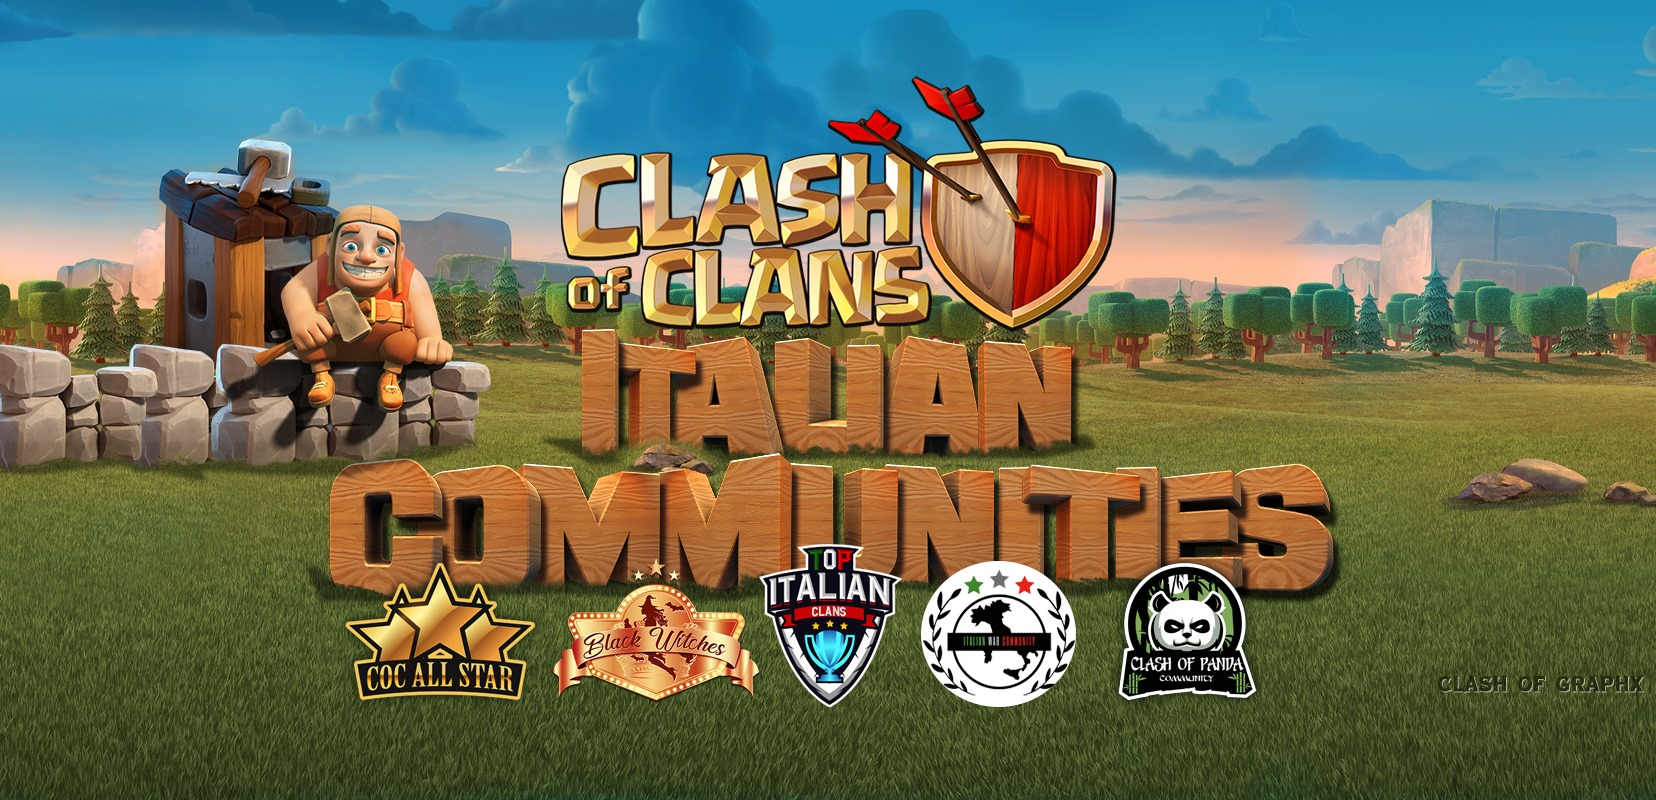 Eventi, Community e aggregazione: Clash of Clans Italian Communities